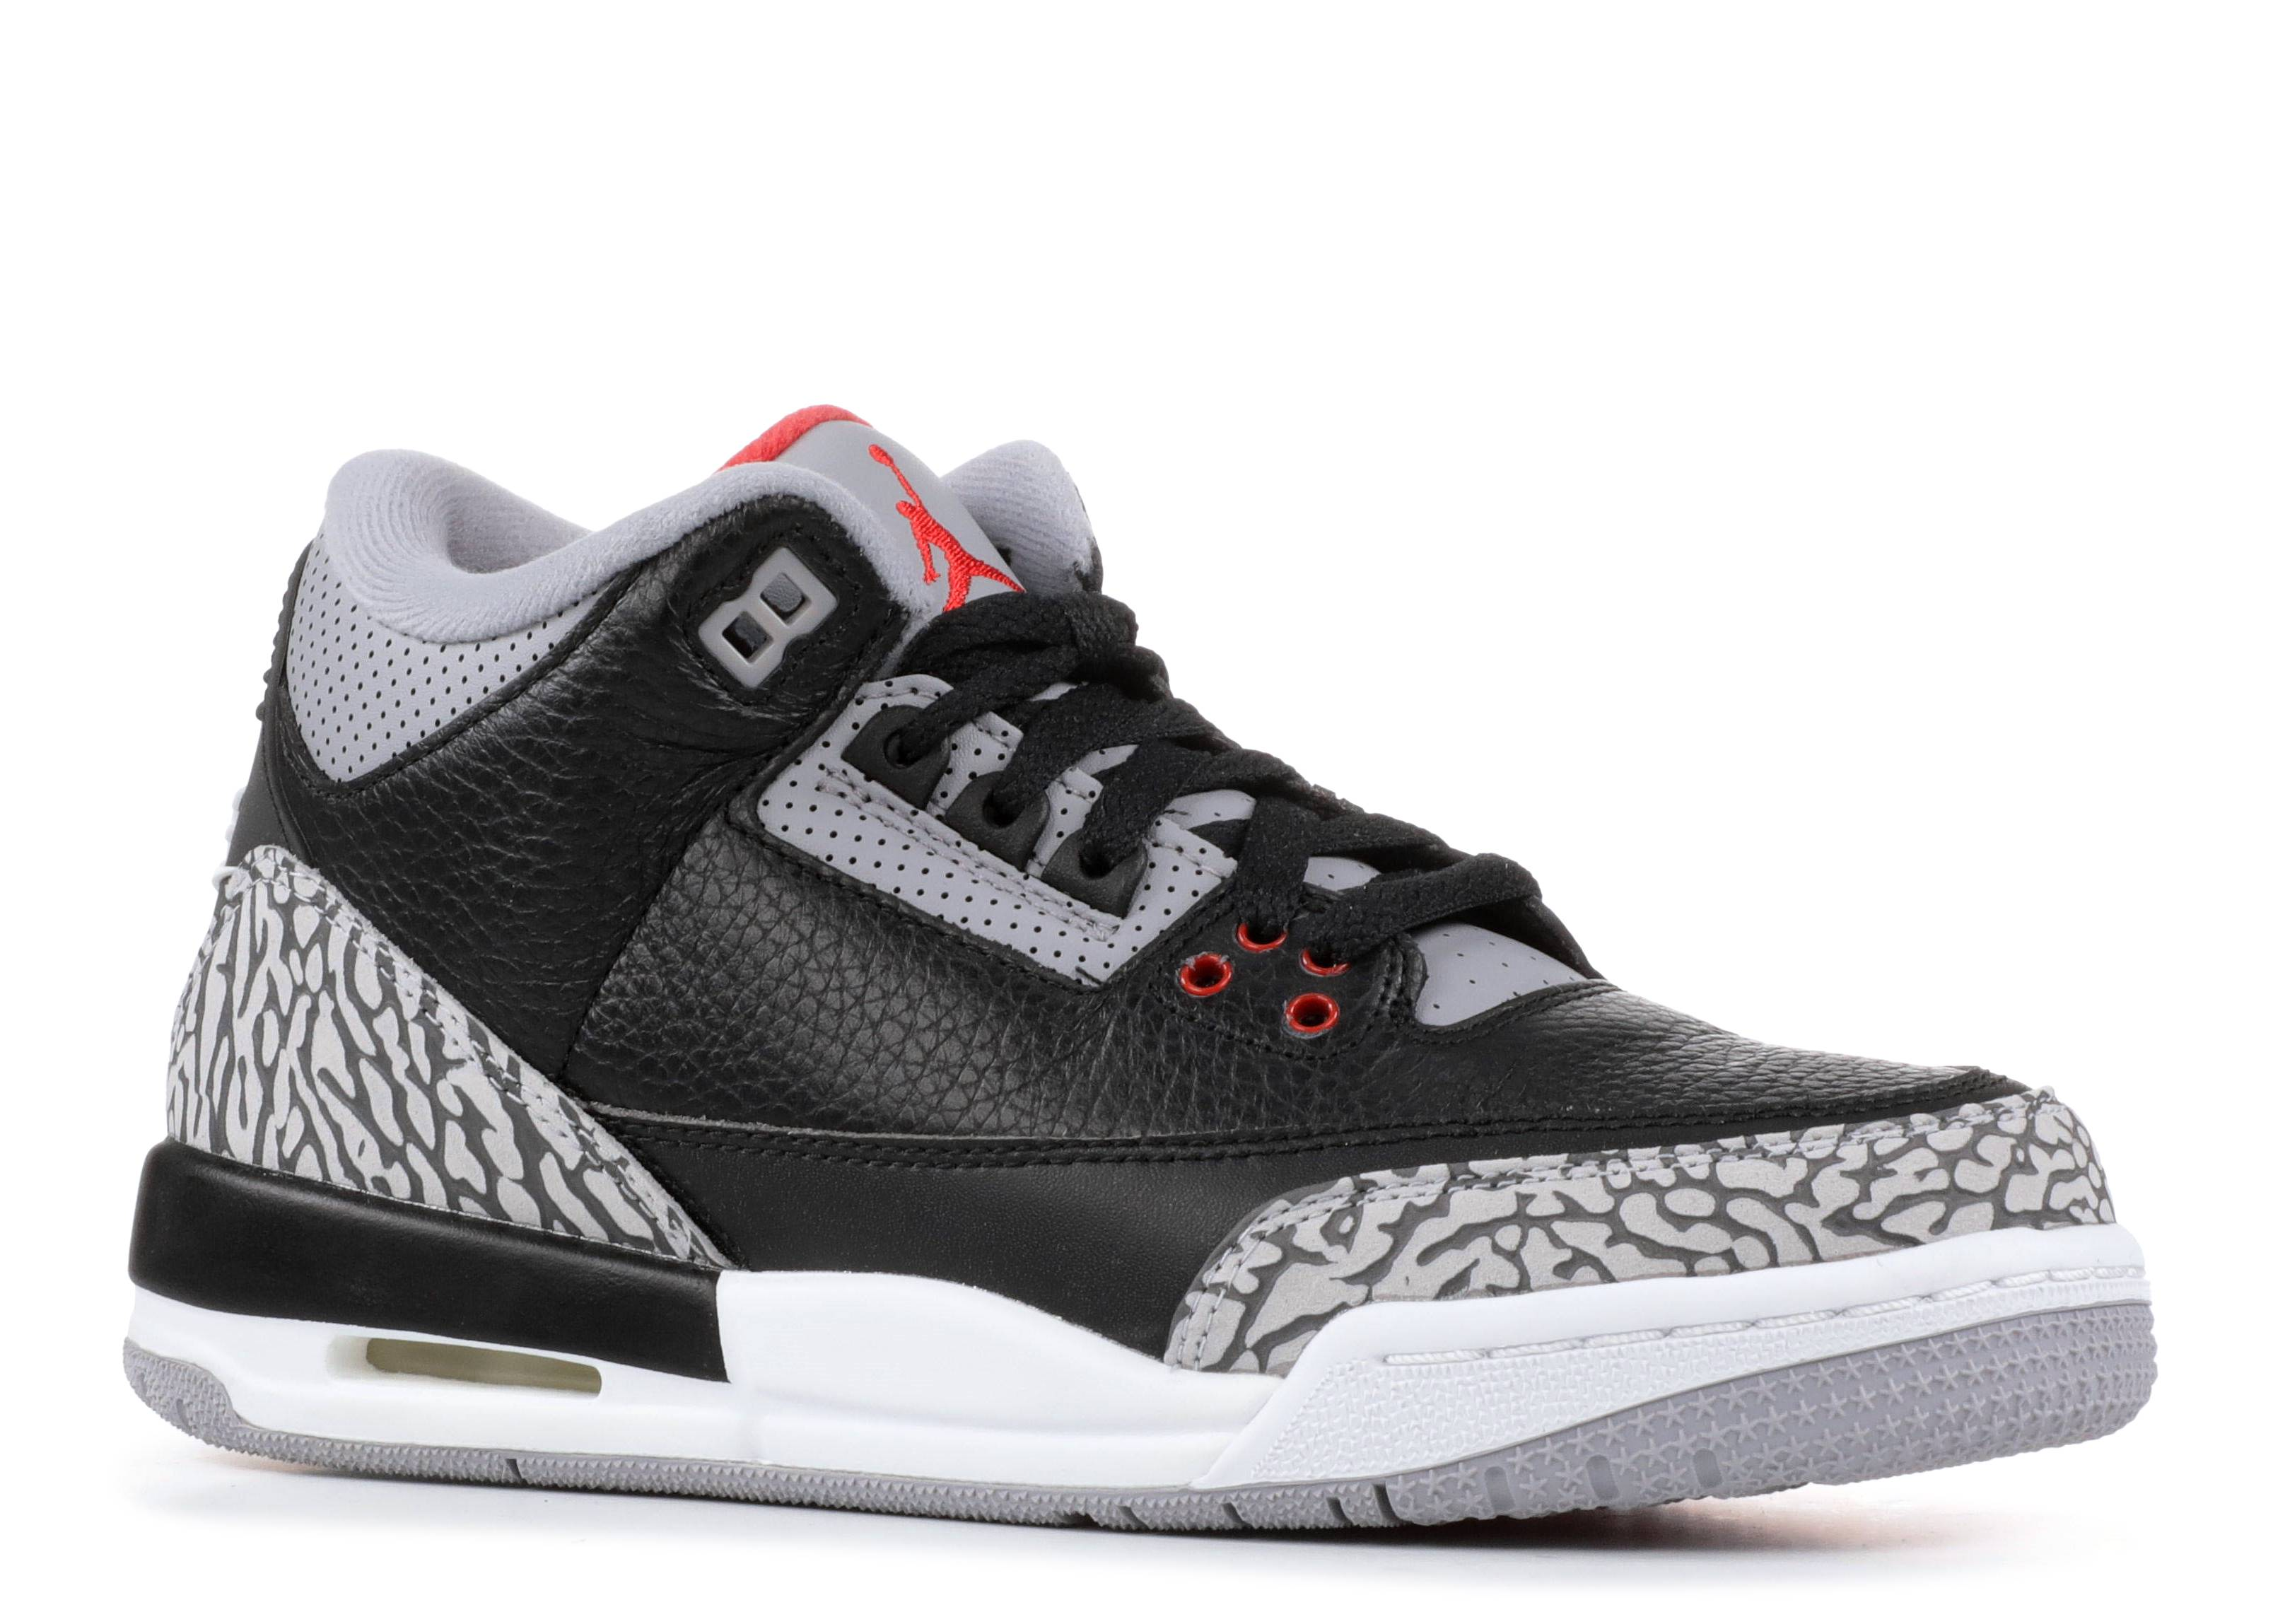 Nike Air Jordan 3 Retro OG BG Black//Fire Red-Cement Grey Black Cement 854261-001